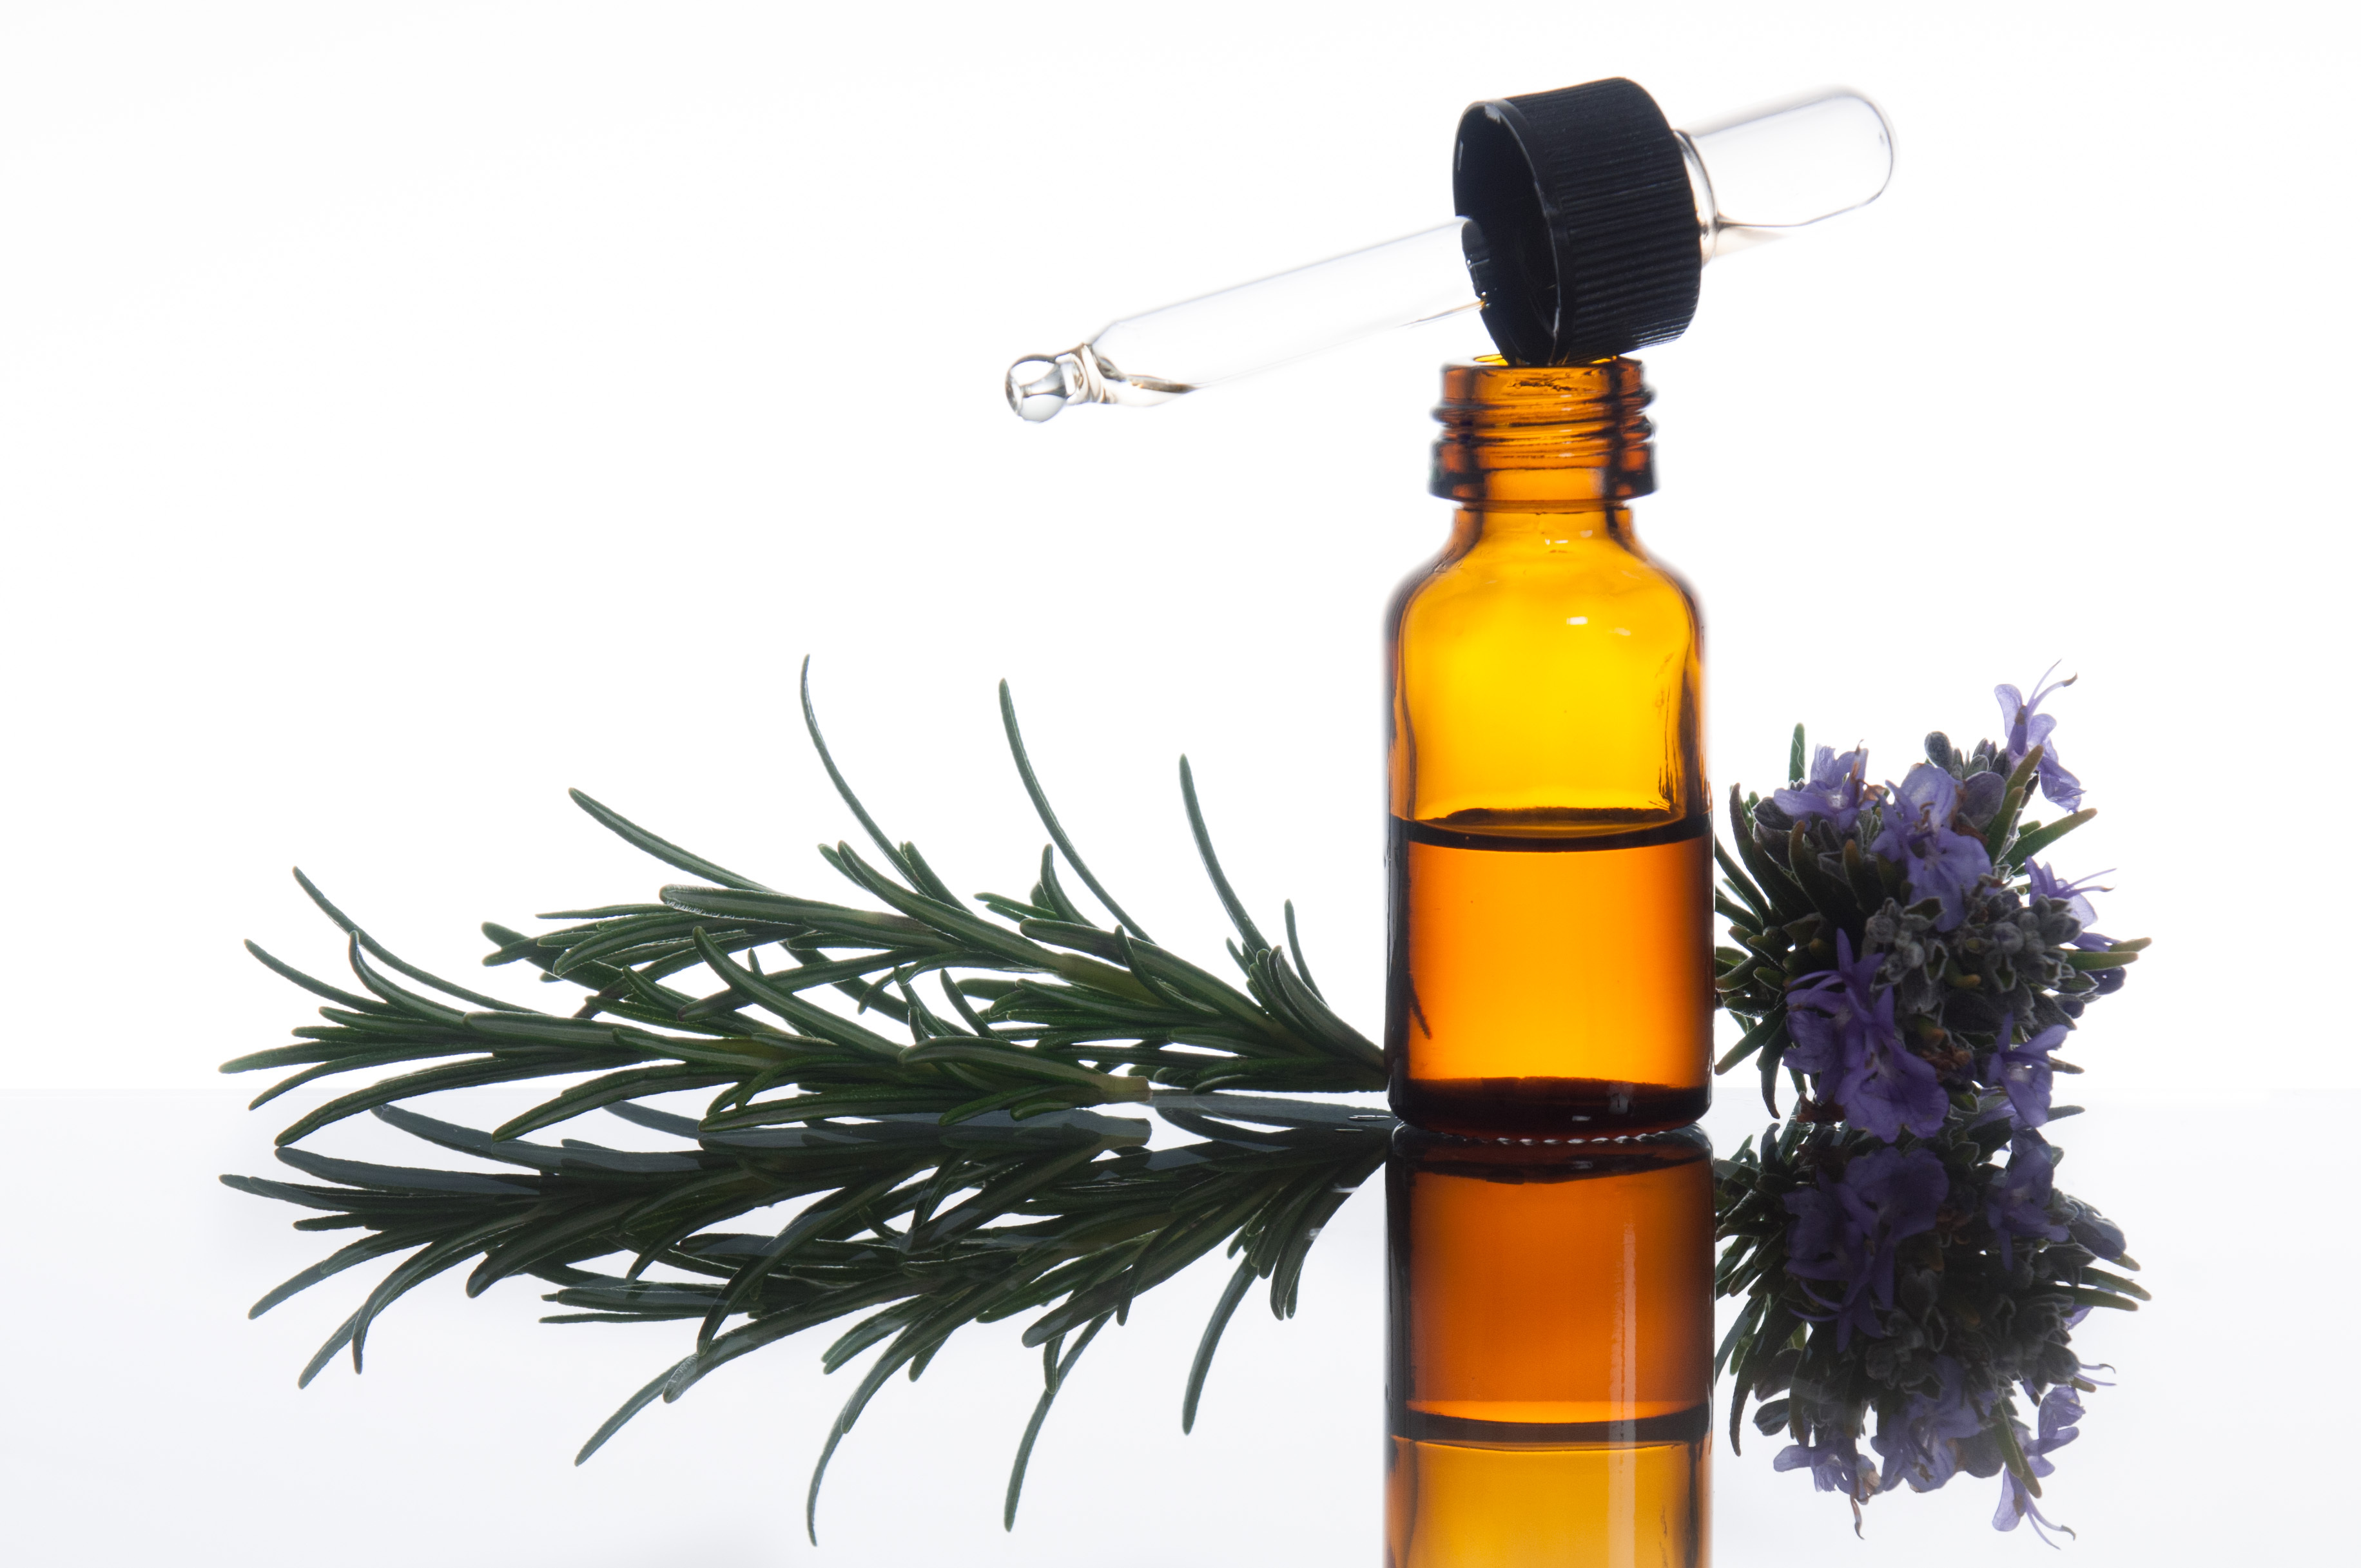 Essential Oils for Stress and Anxiety - Get Natural Help